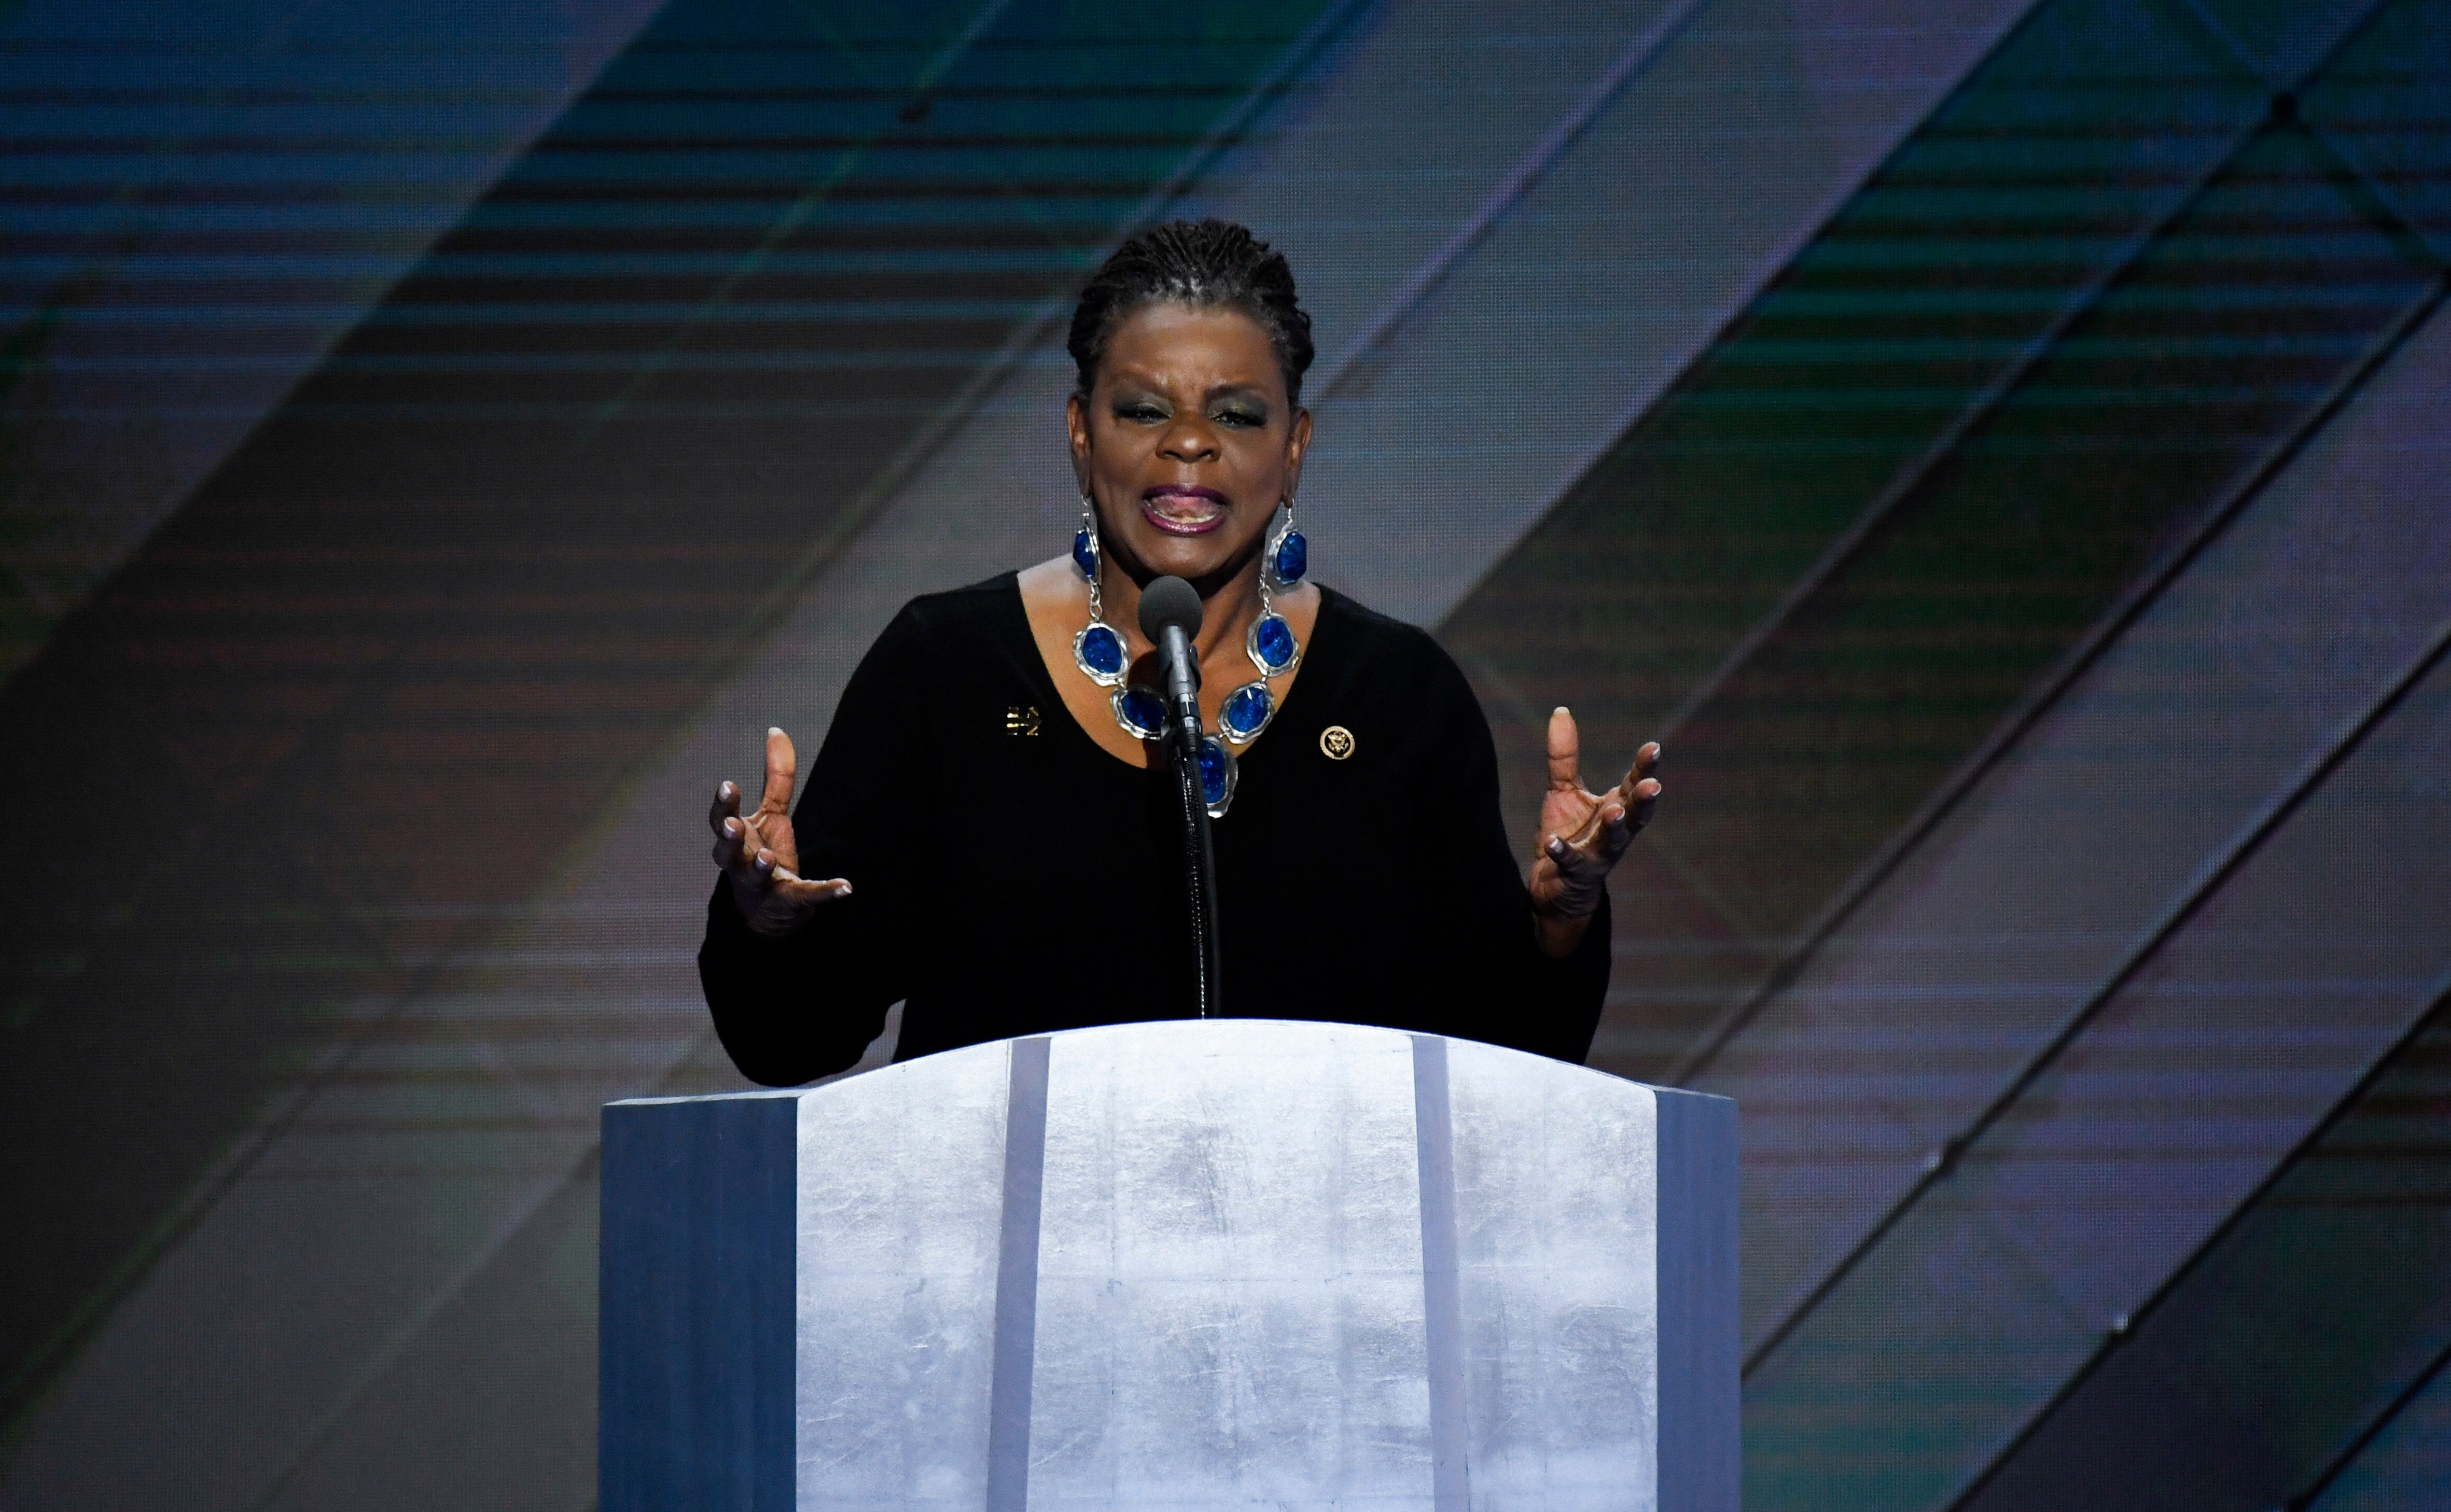 UNITED STATES - JULY 28: Rep. Gwen Moore, D-Wisc., speaks at the Democratic National Convention in Philadelphia on Thursday, July 28, 2016. (Photo By Bill Clark/CQ Roll Call)